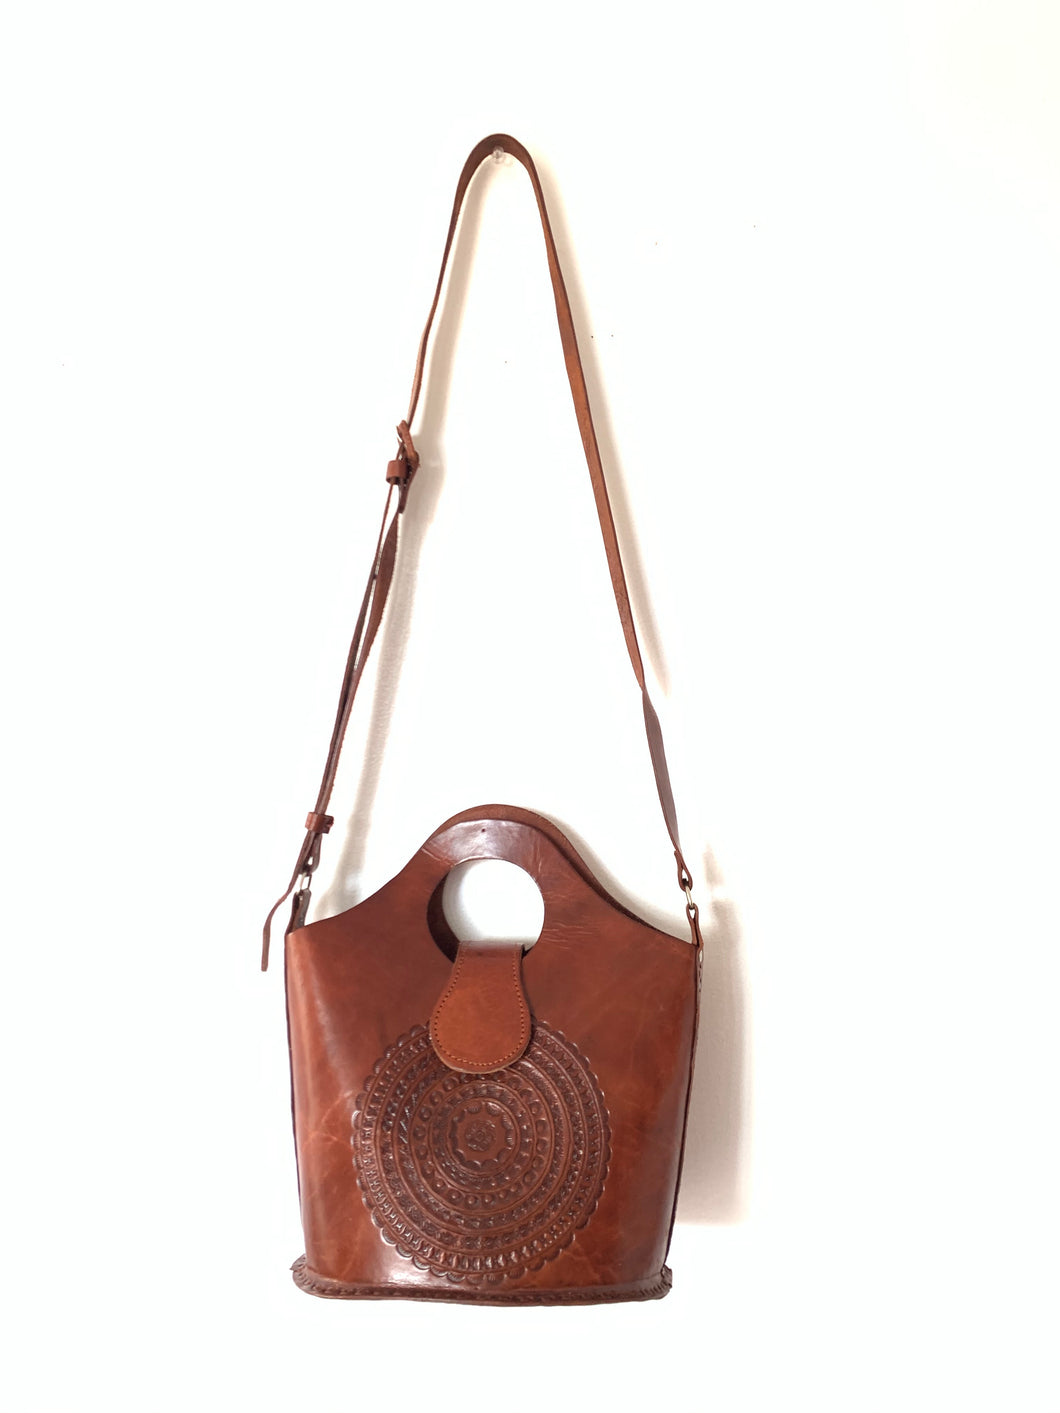 Chiapas leather bucket bag - colibrilove